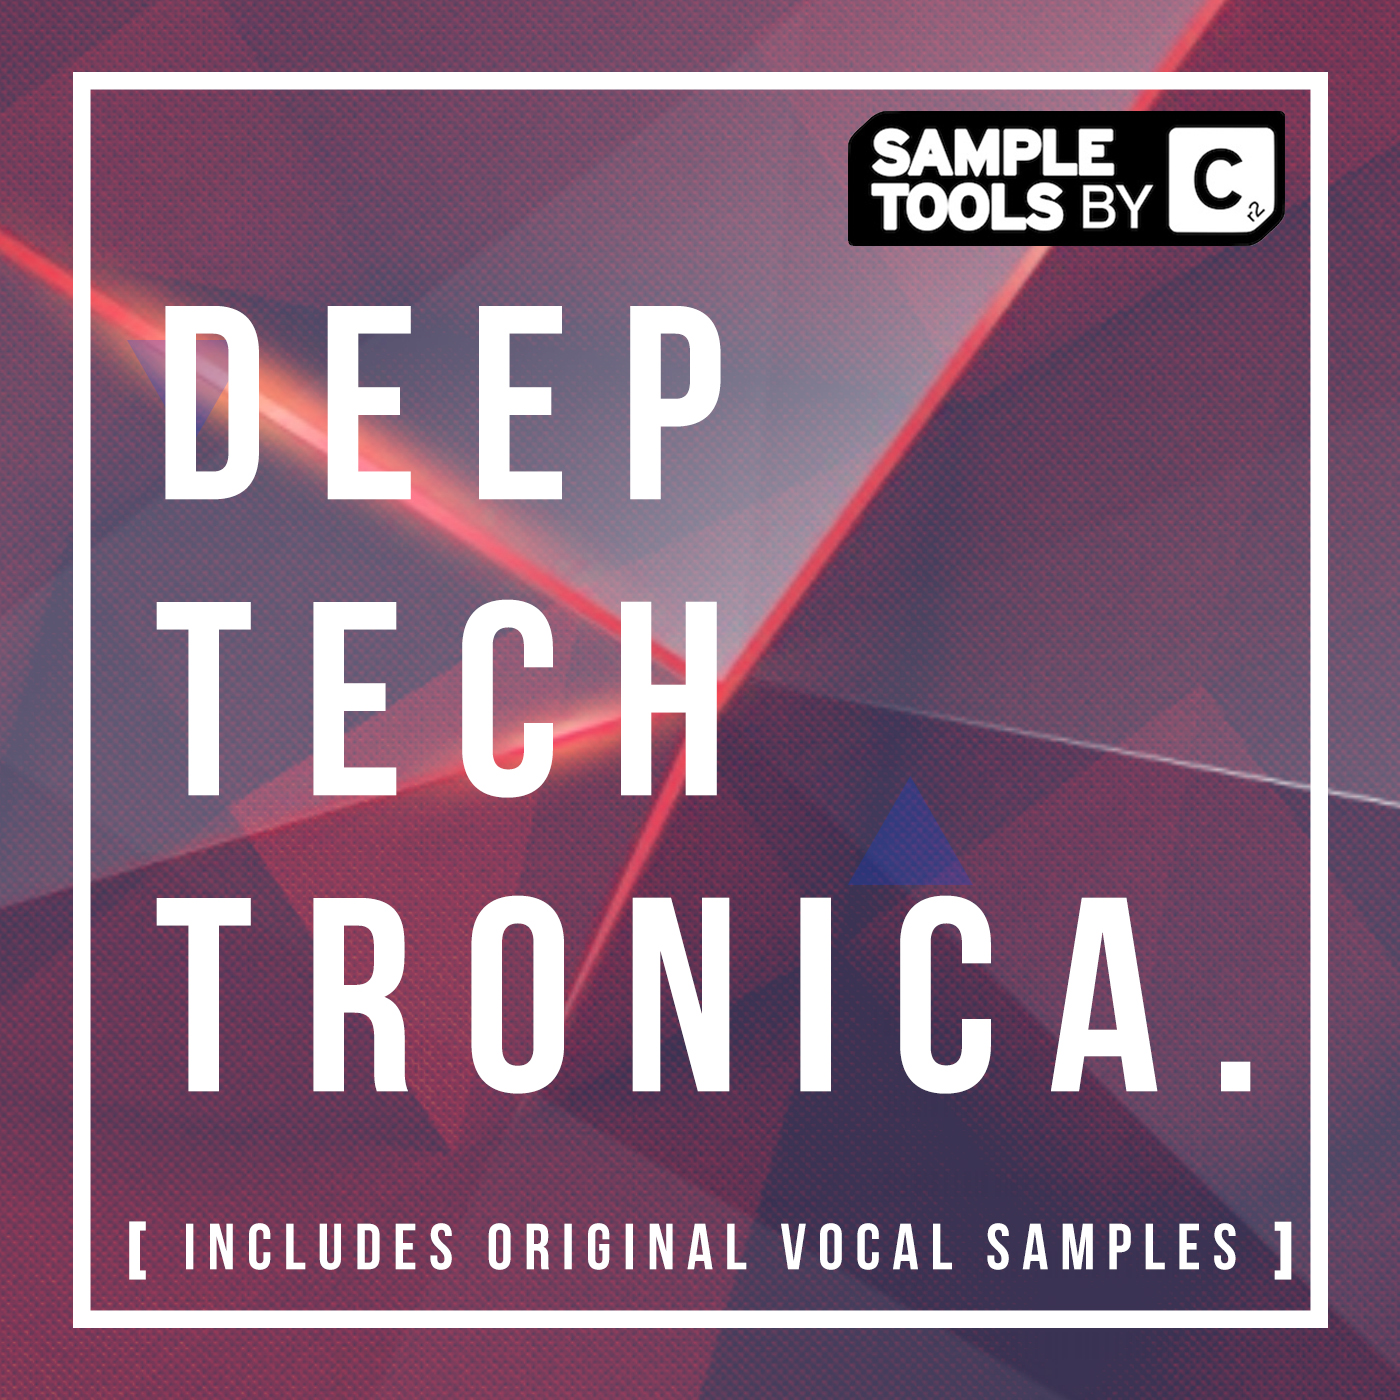 Deep Tech Tronica Artwork